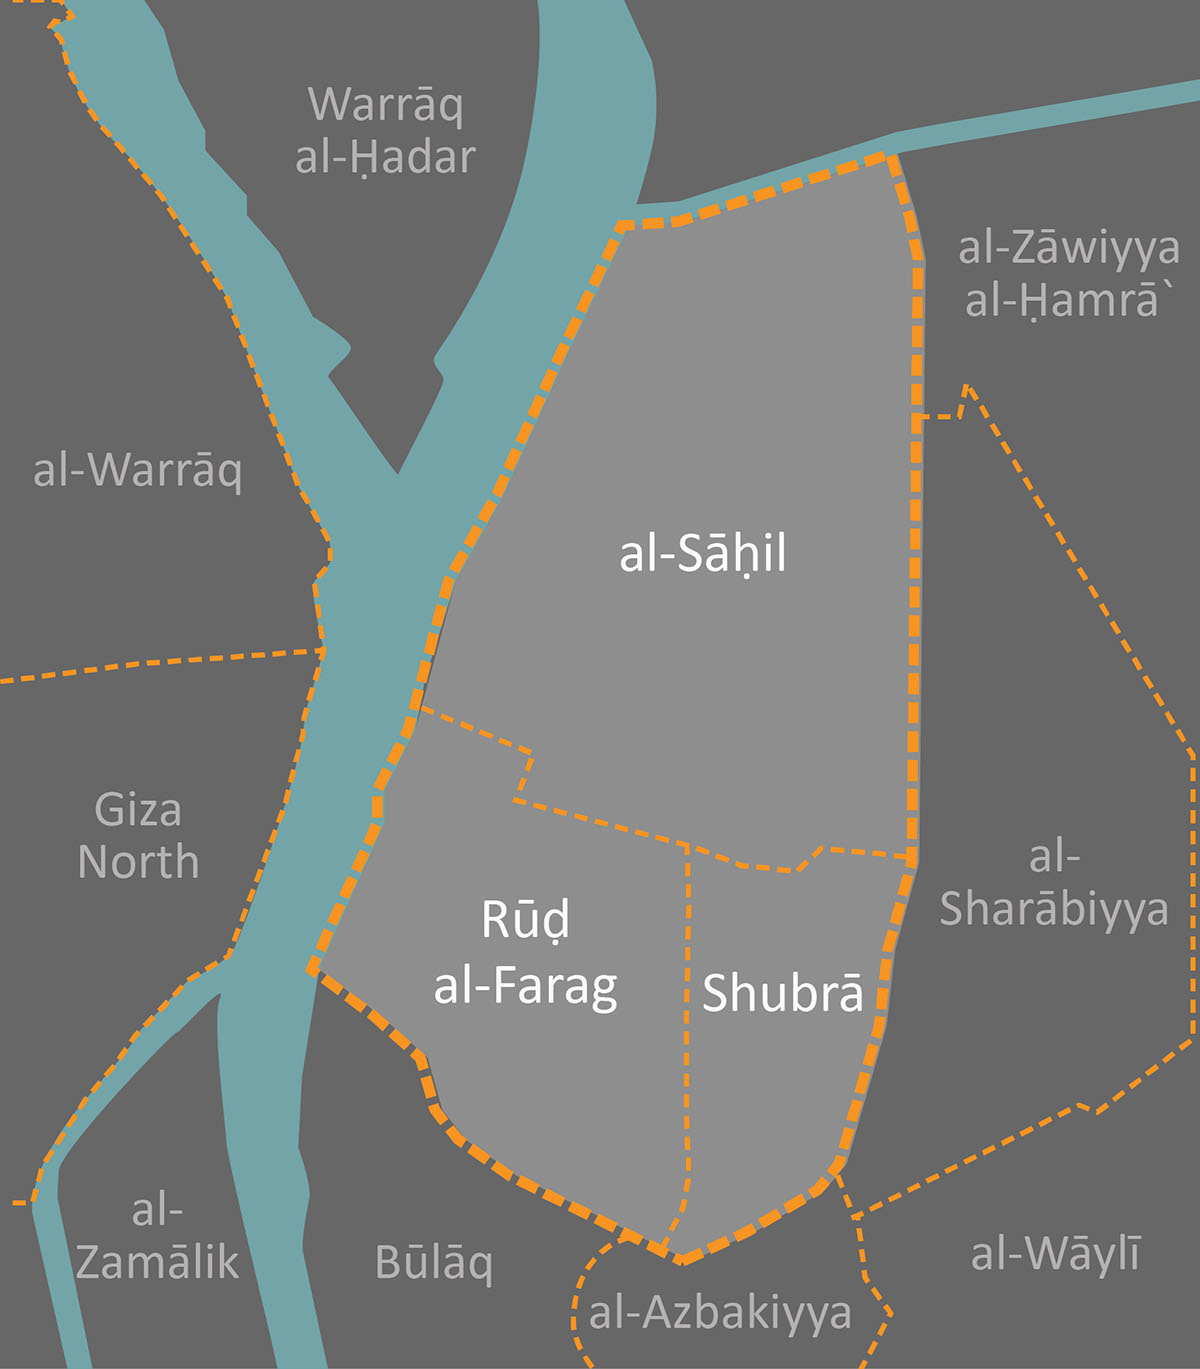 Shubra and its surrounding administrative districts